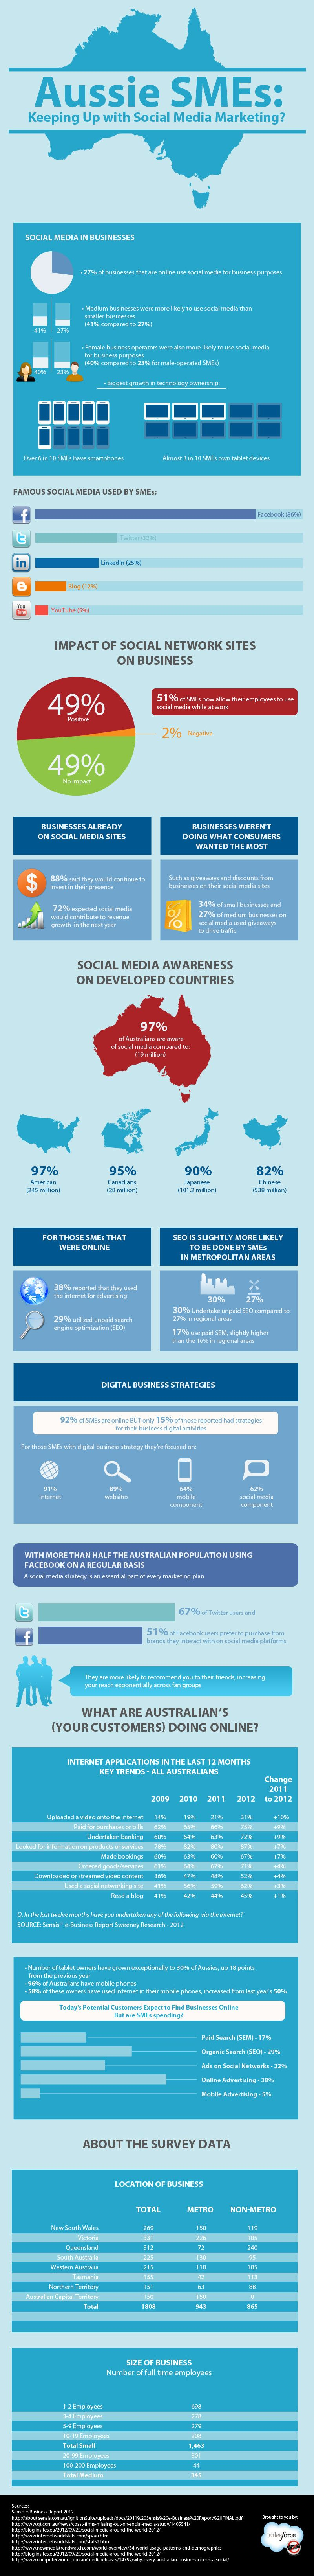 What Is The State Of Social Media Business In Australia?